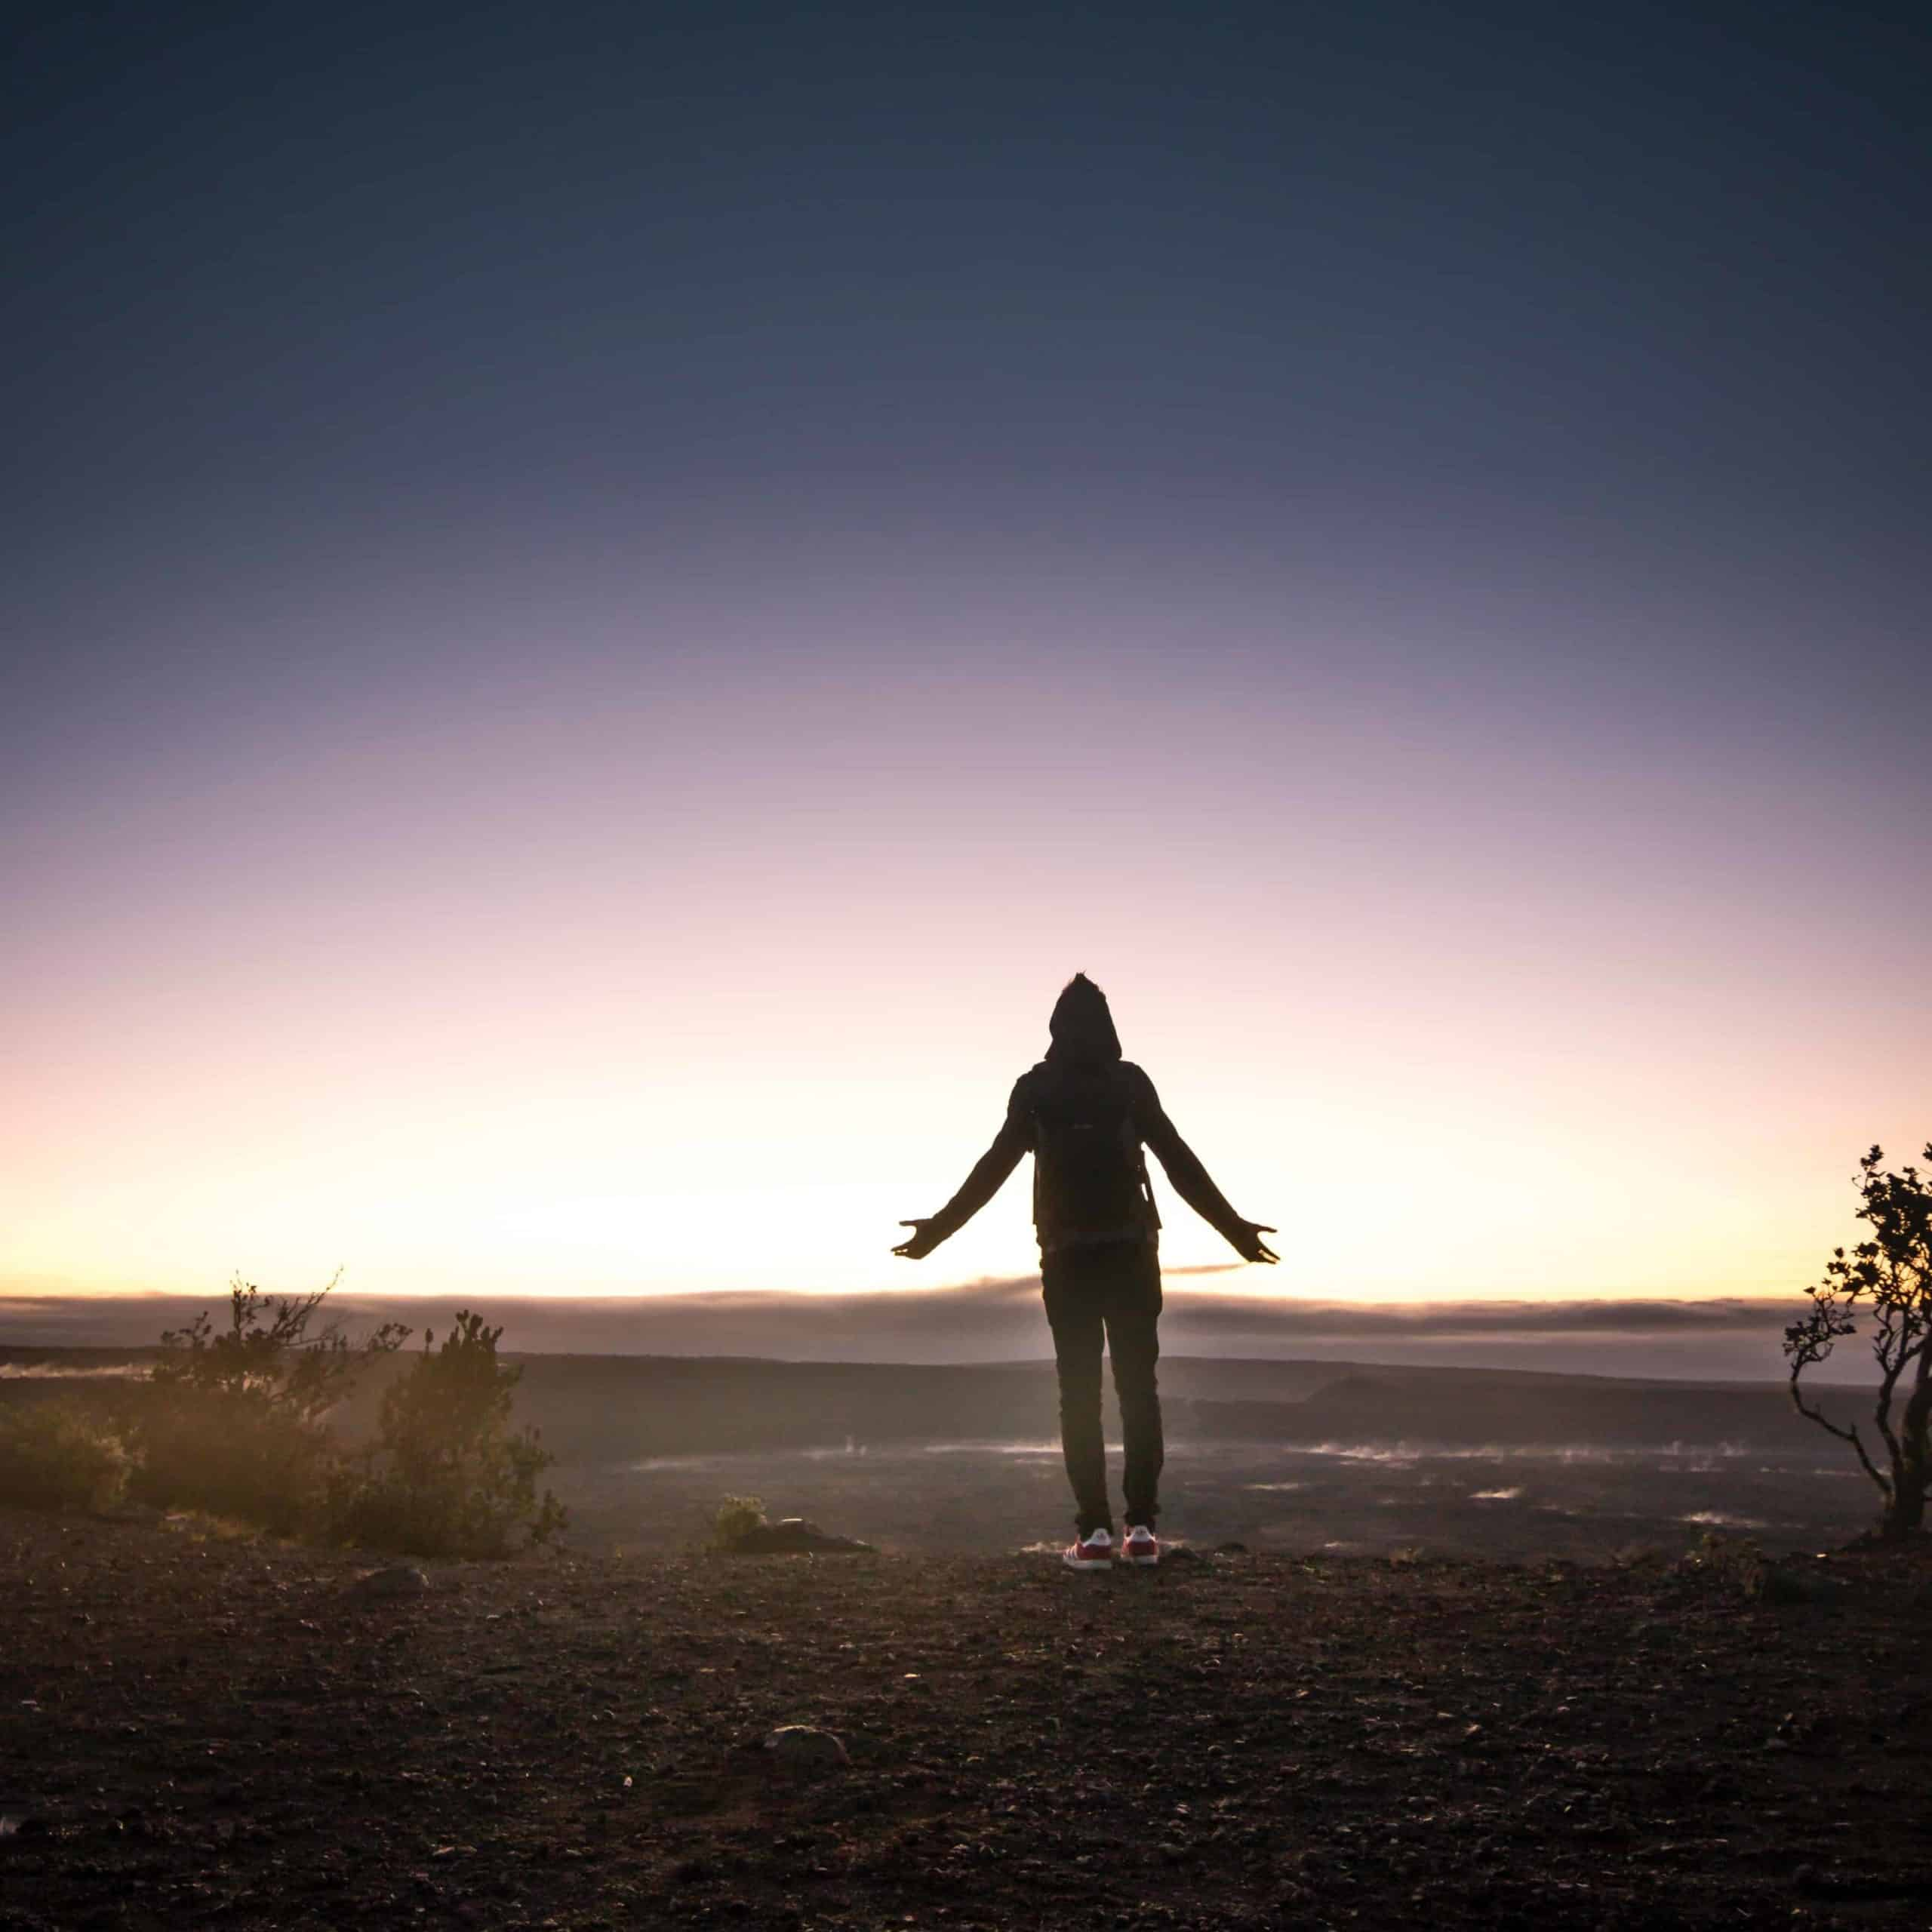 A person standing in the desert at dusk with their arms outstretched.